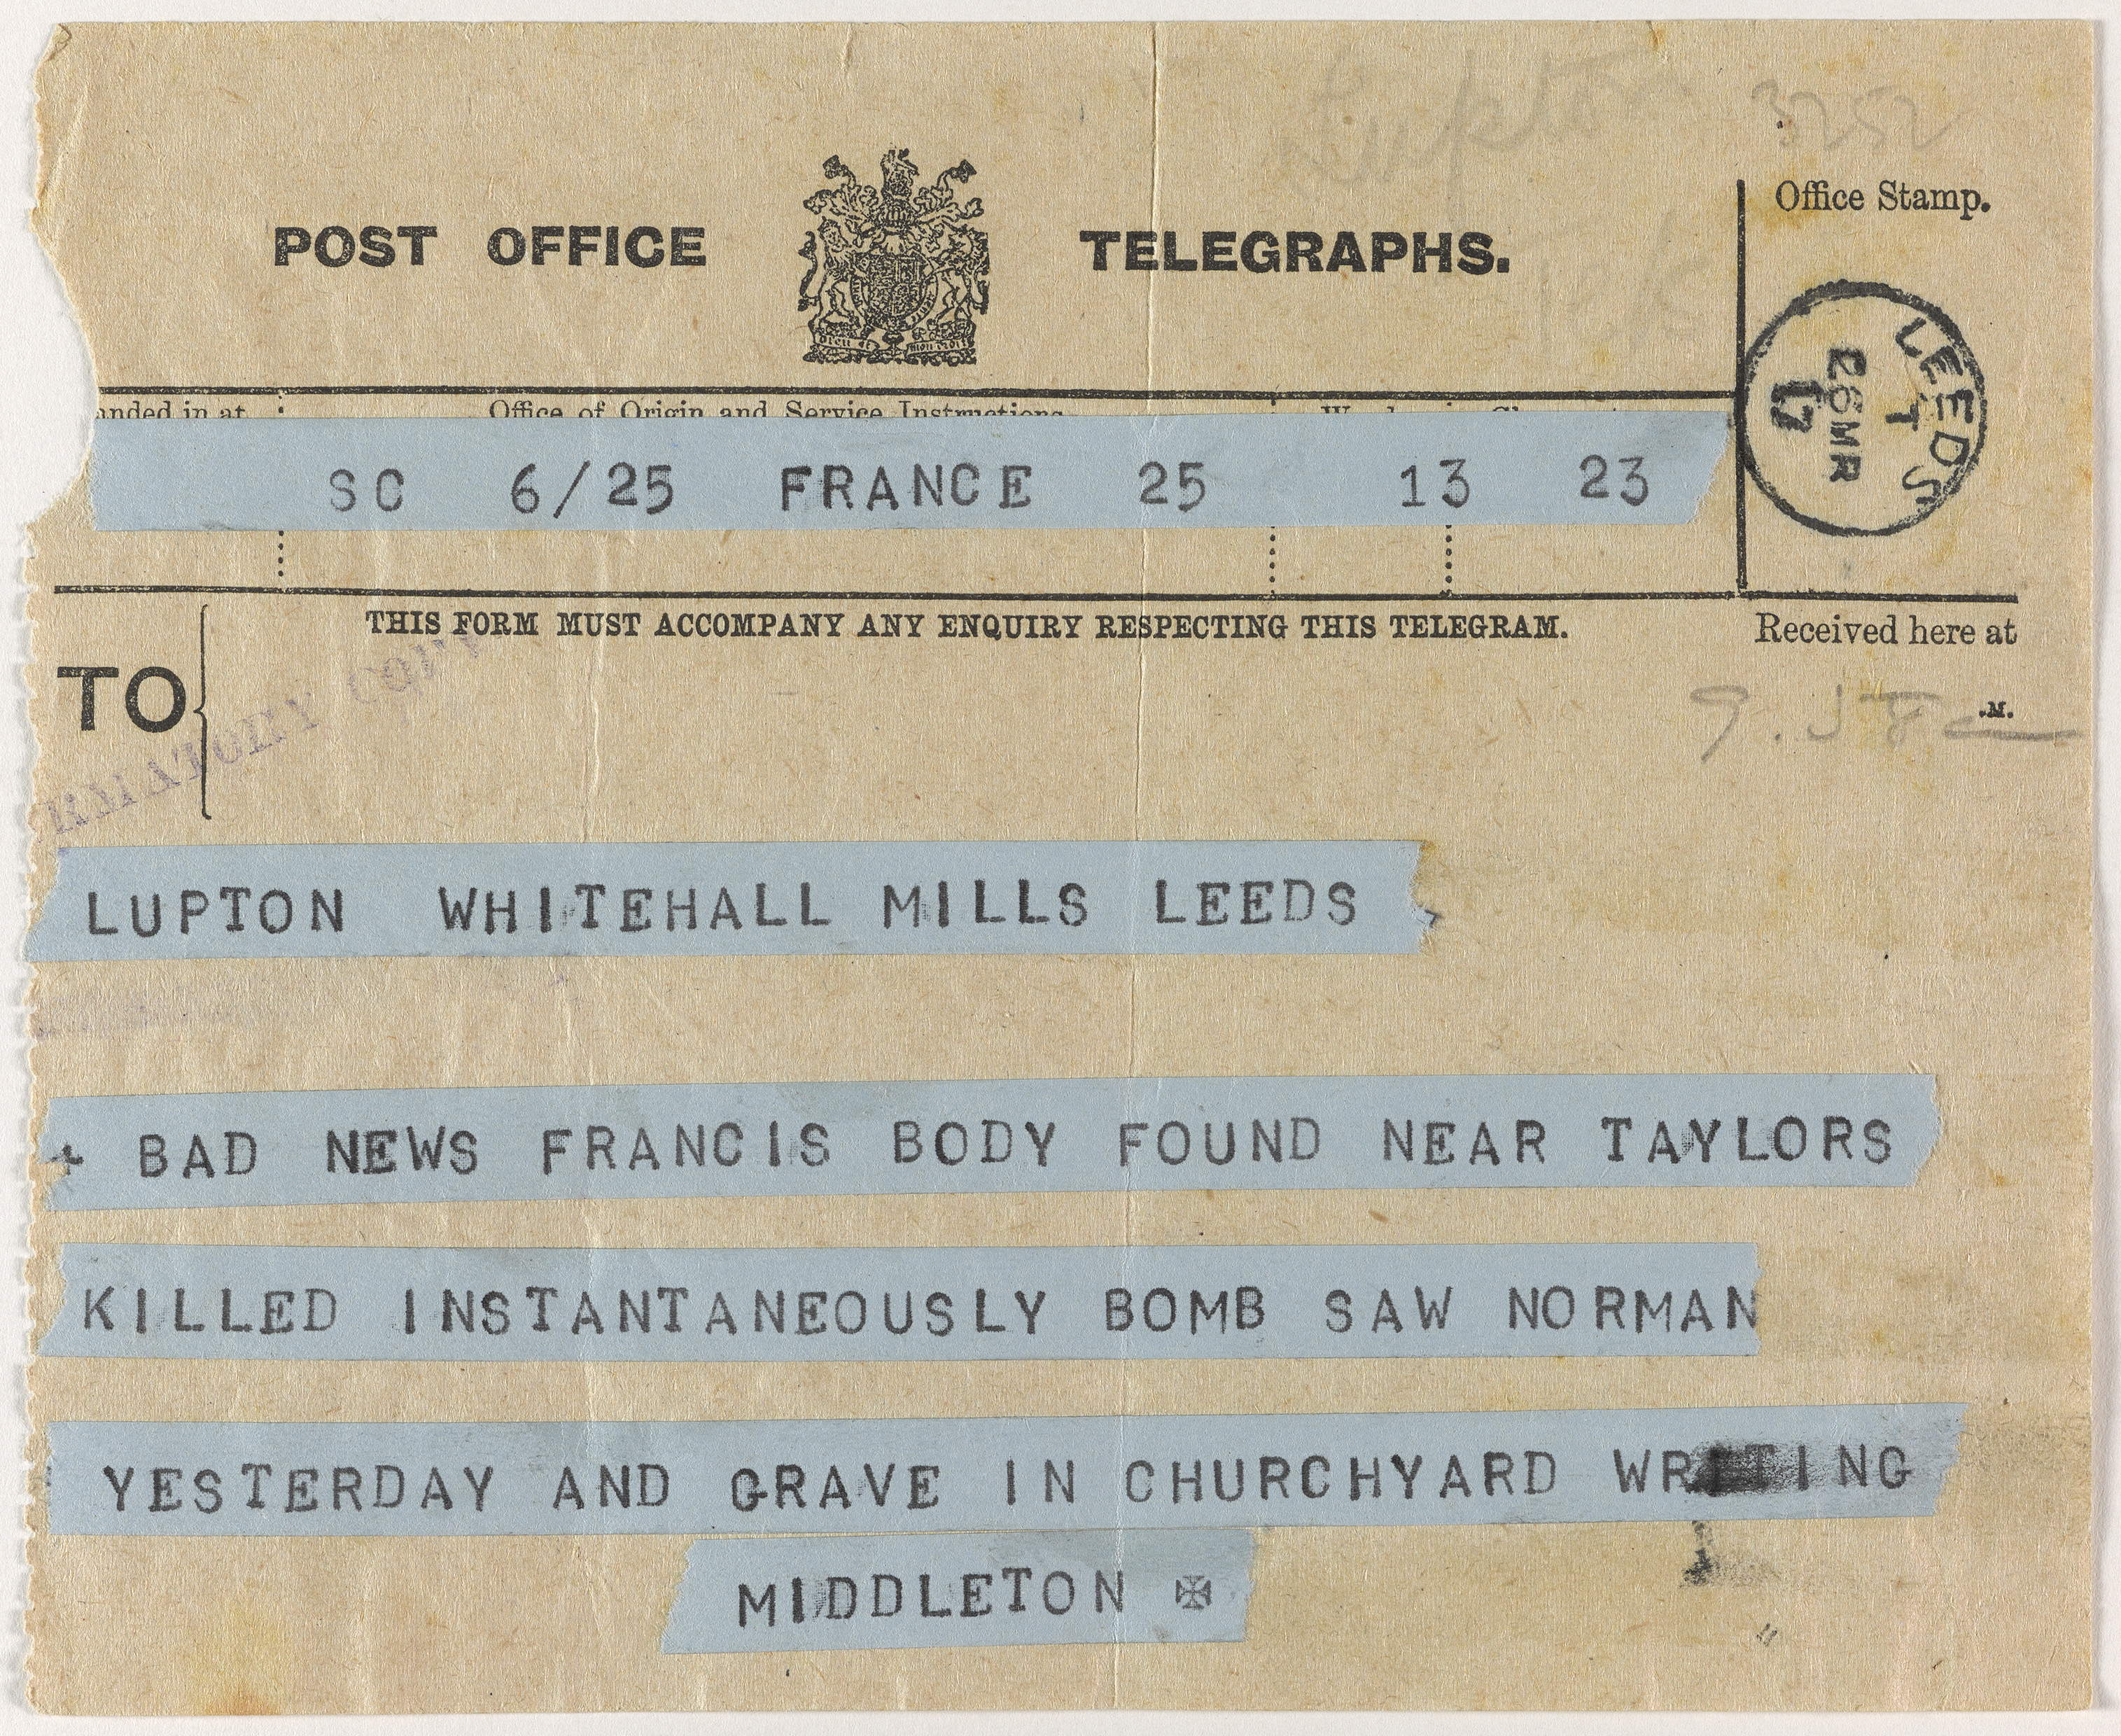 A telegram from Noel Middleton